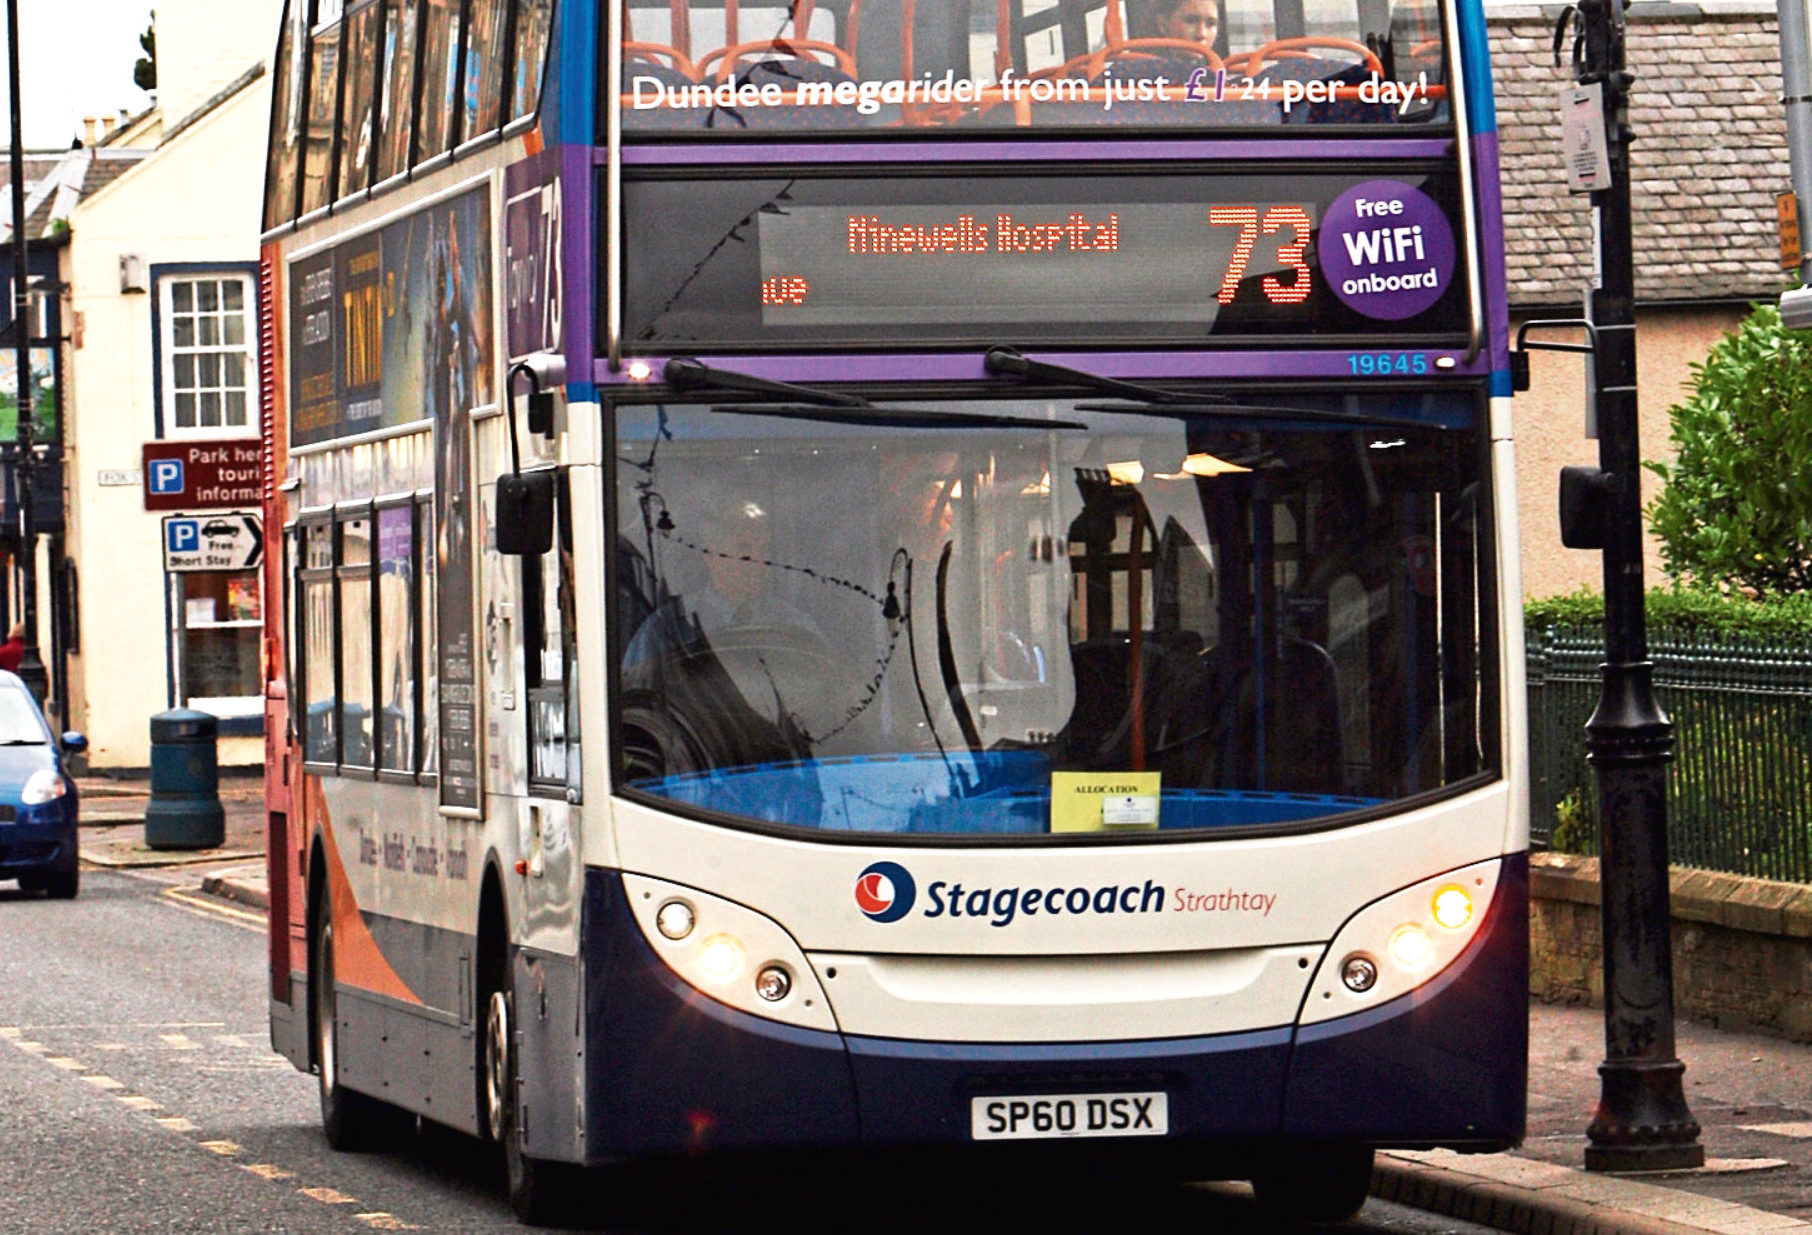 A 73 Stagecoach bus.